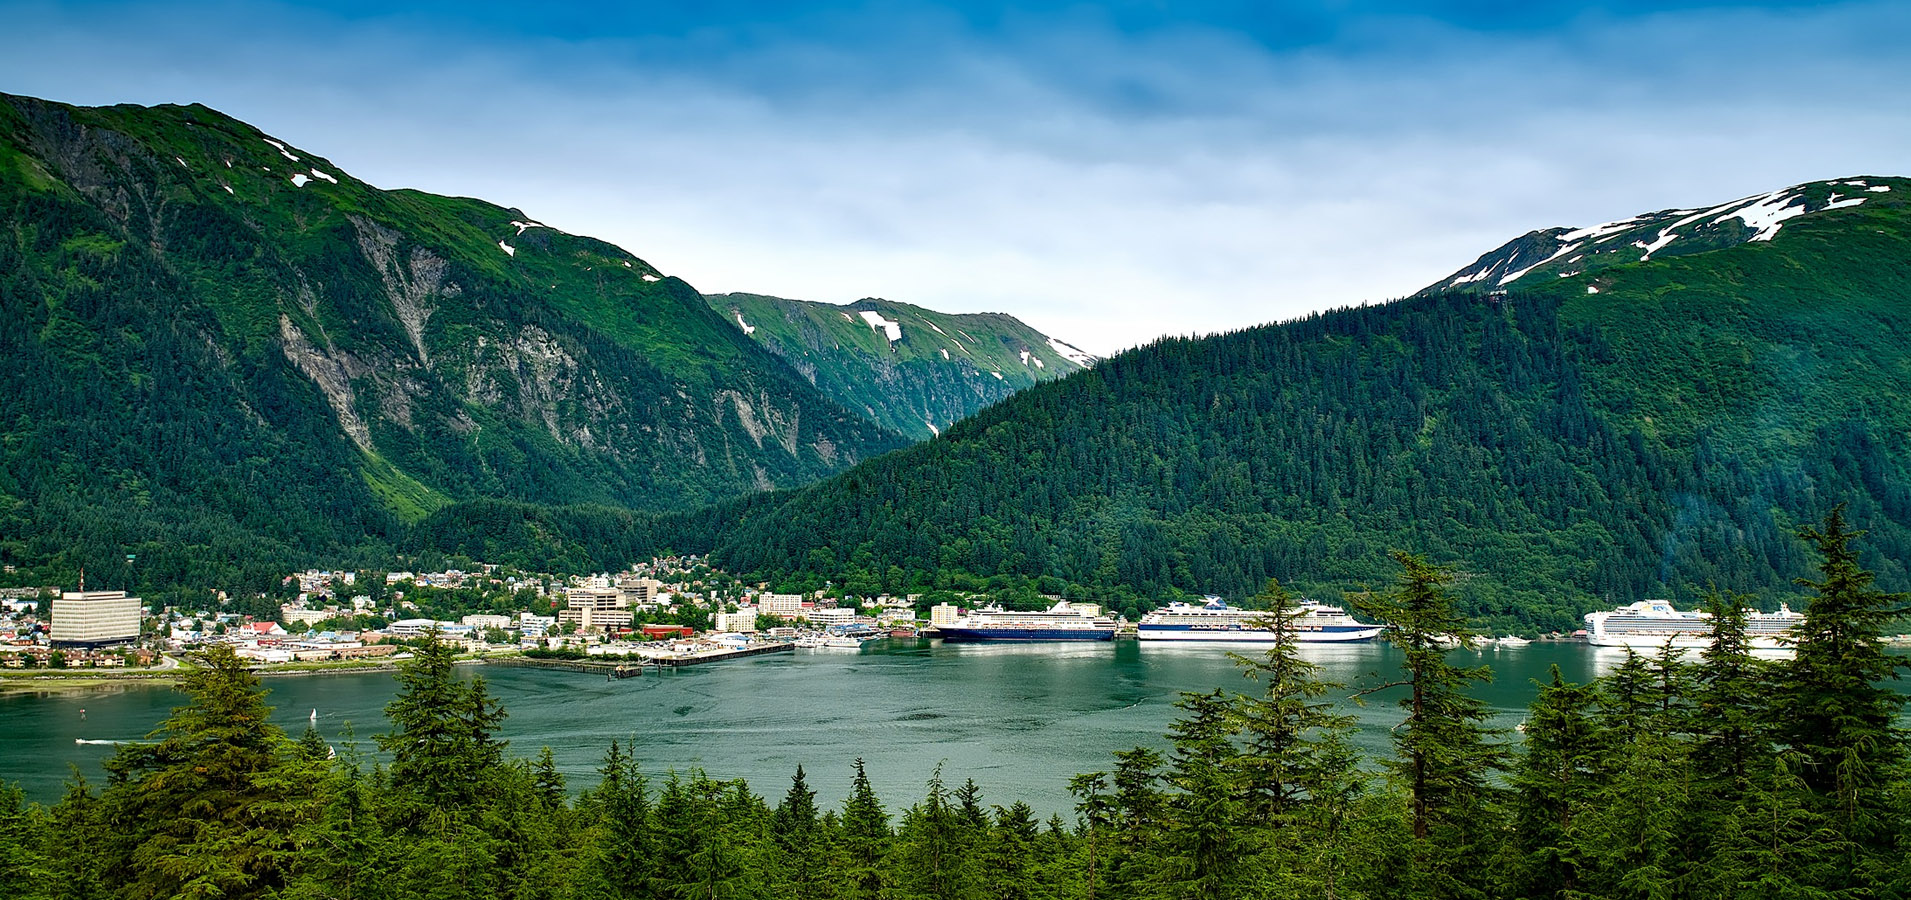 Best Alaska Cruise Photos